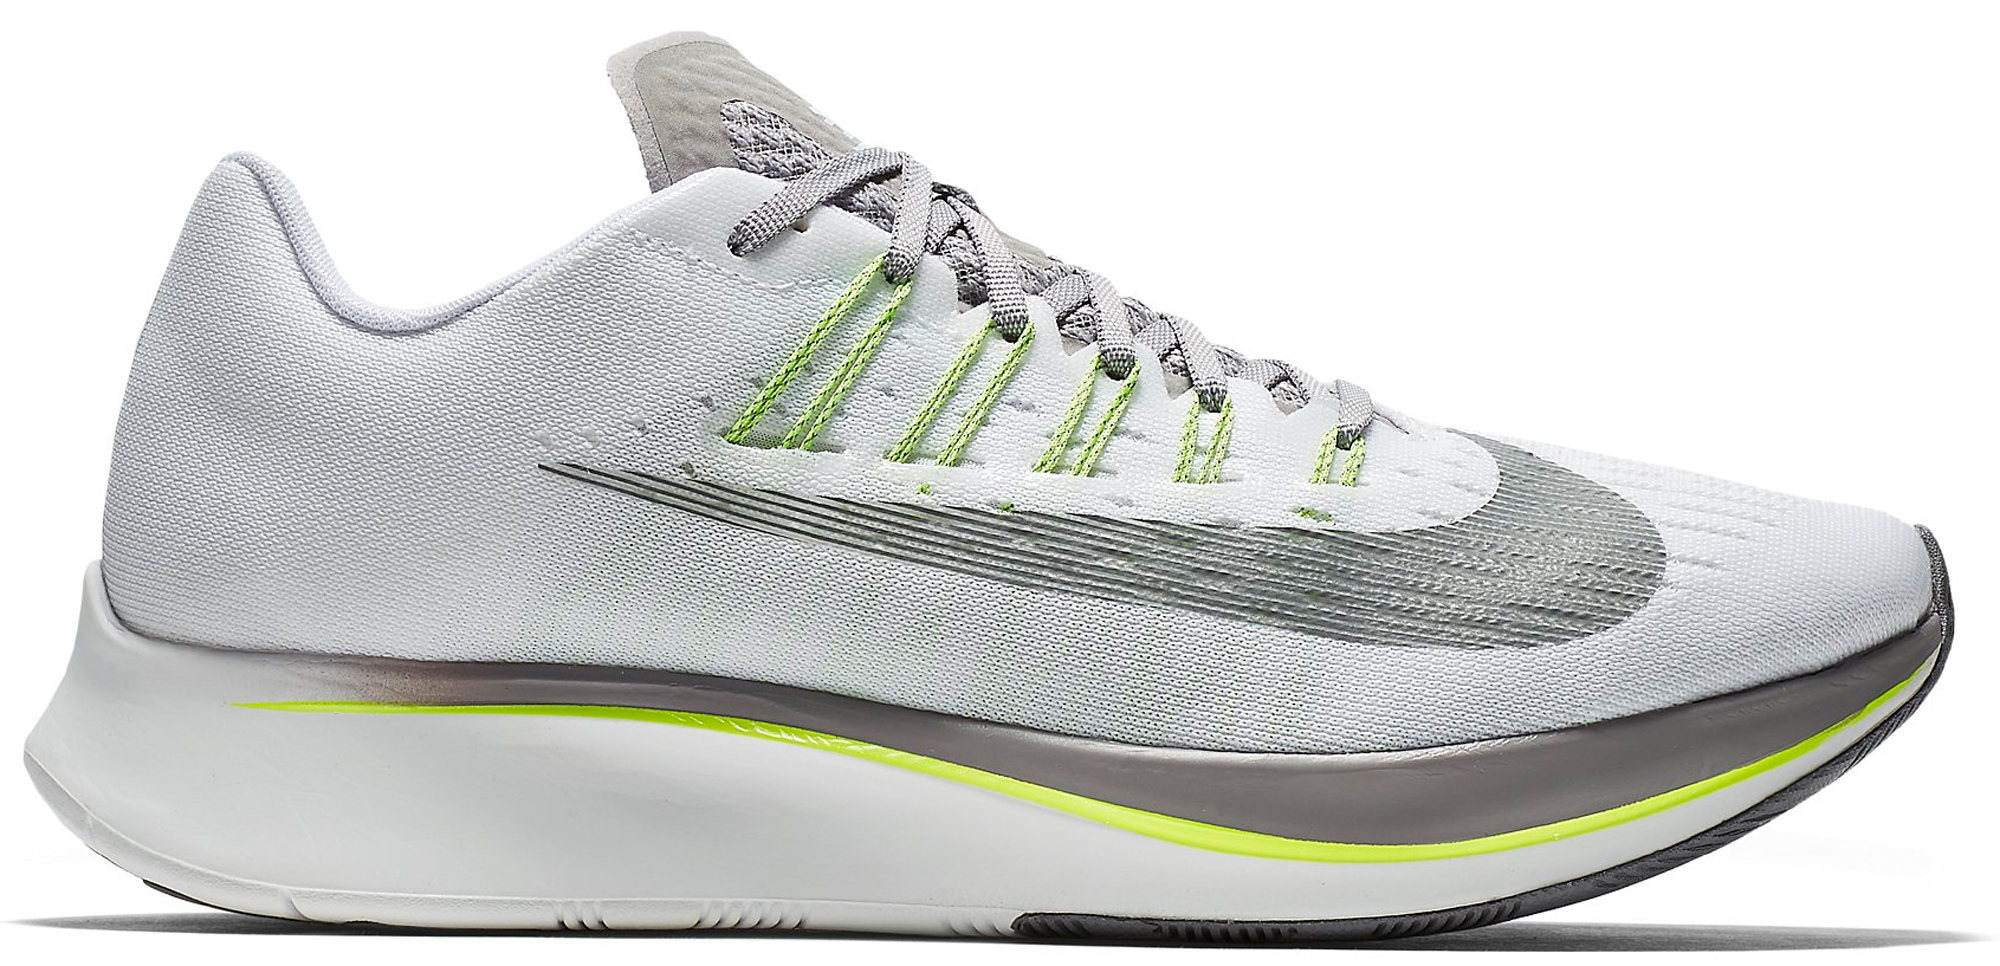 Nike Zoom Fly SP White Atmosphere Grey Volt (W)